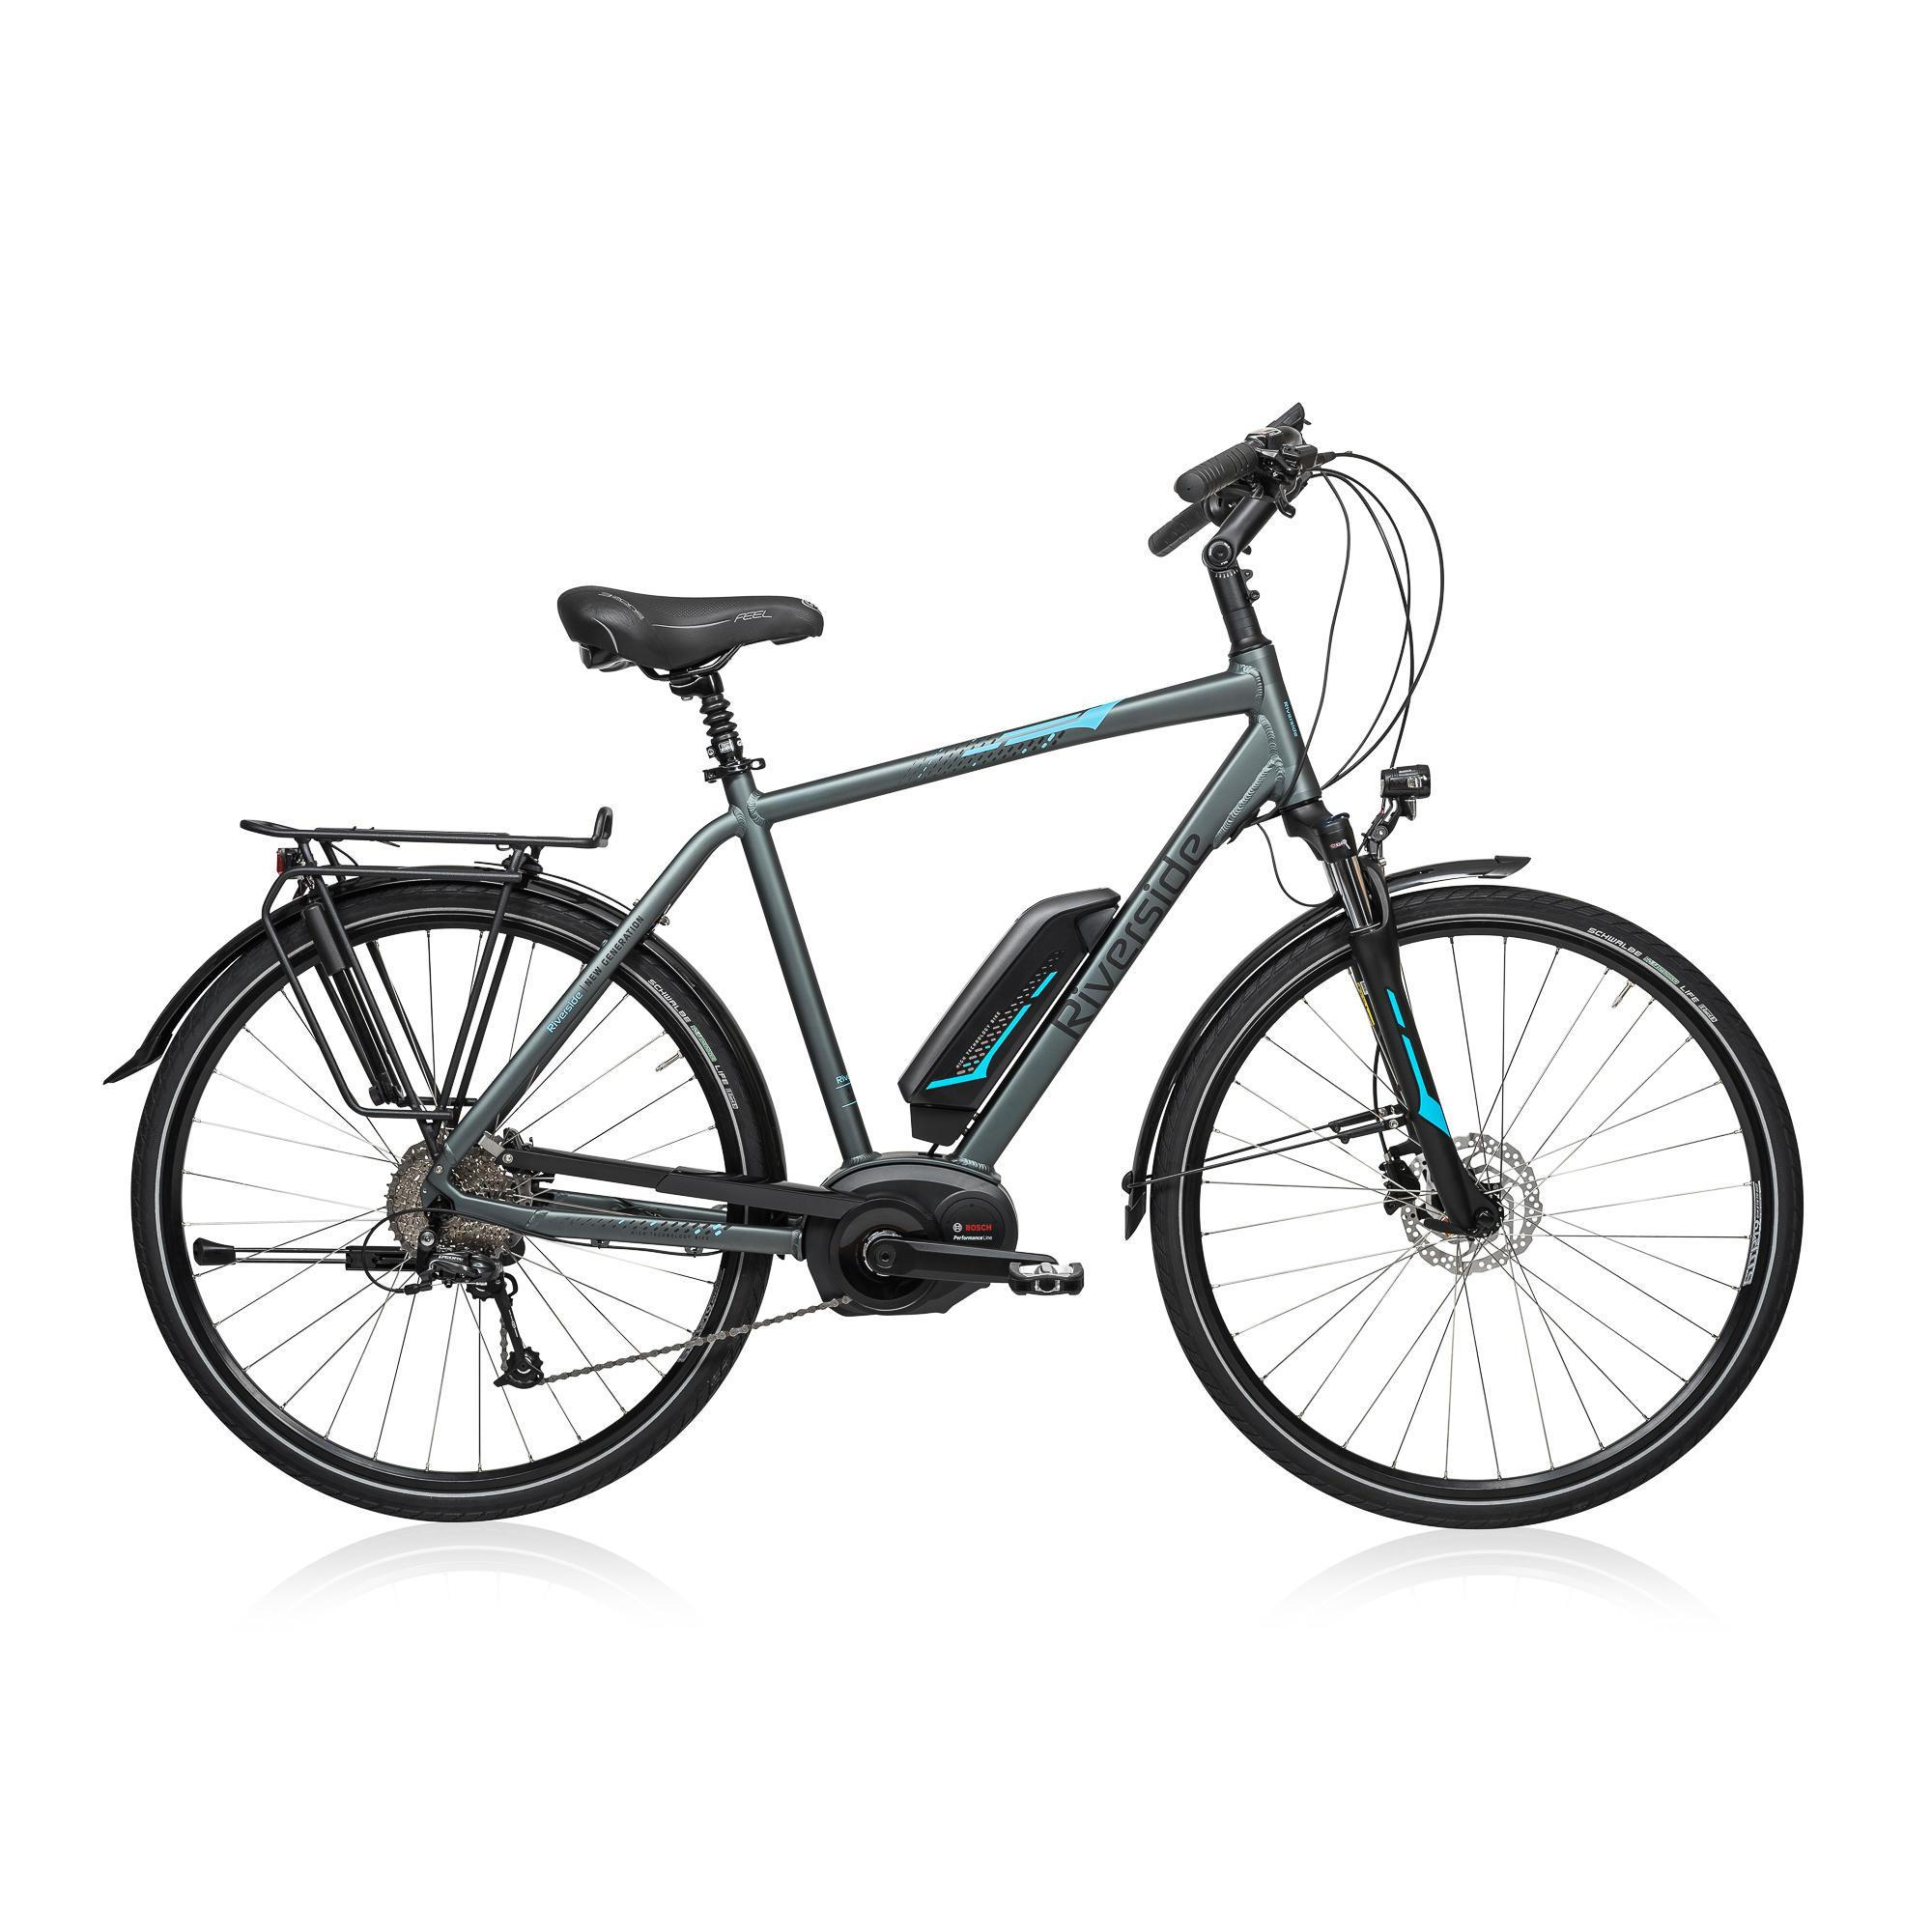 e bike 28 trekkingrad riverside 500 herren performance line 400wh grau blau riverside decathlon. Black Bedroom Furniture Sets. Home Design Ideas